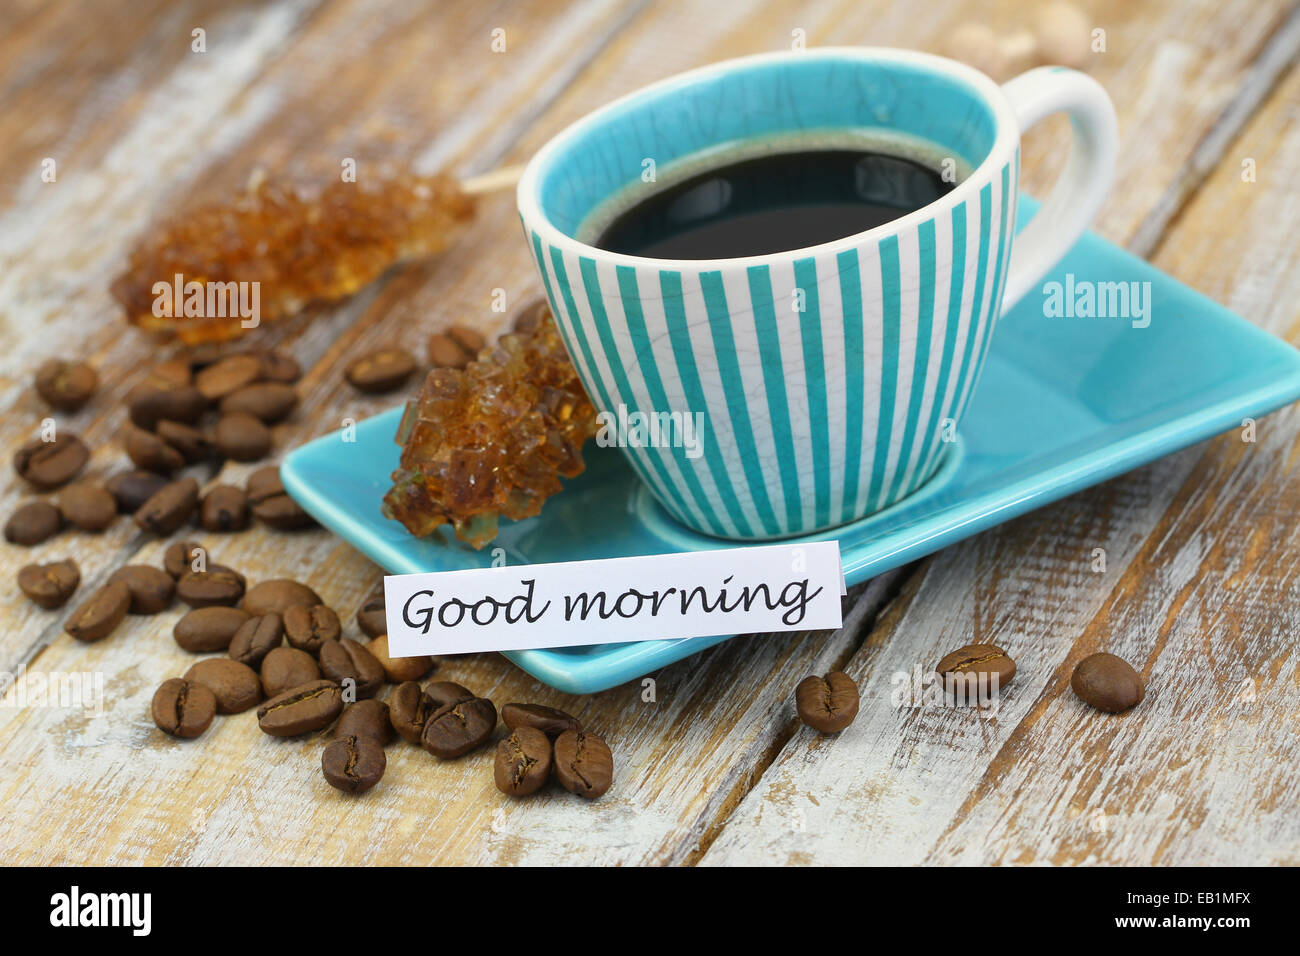 Good Morning Vintage Photos : Good morning card with vintage cup of coffee on rustic